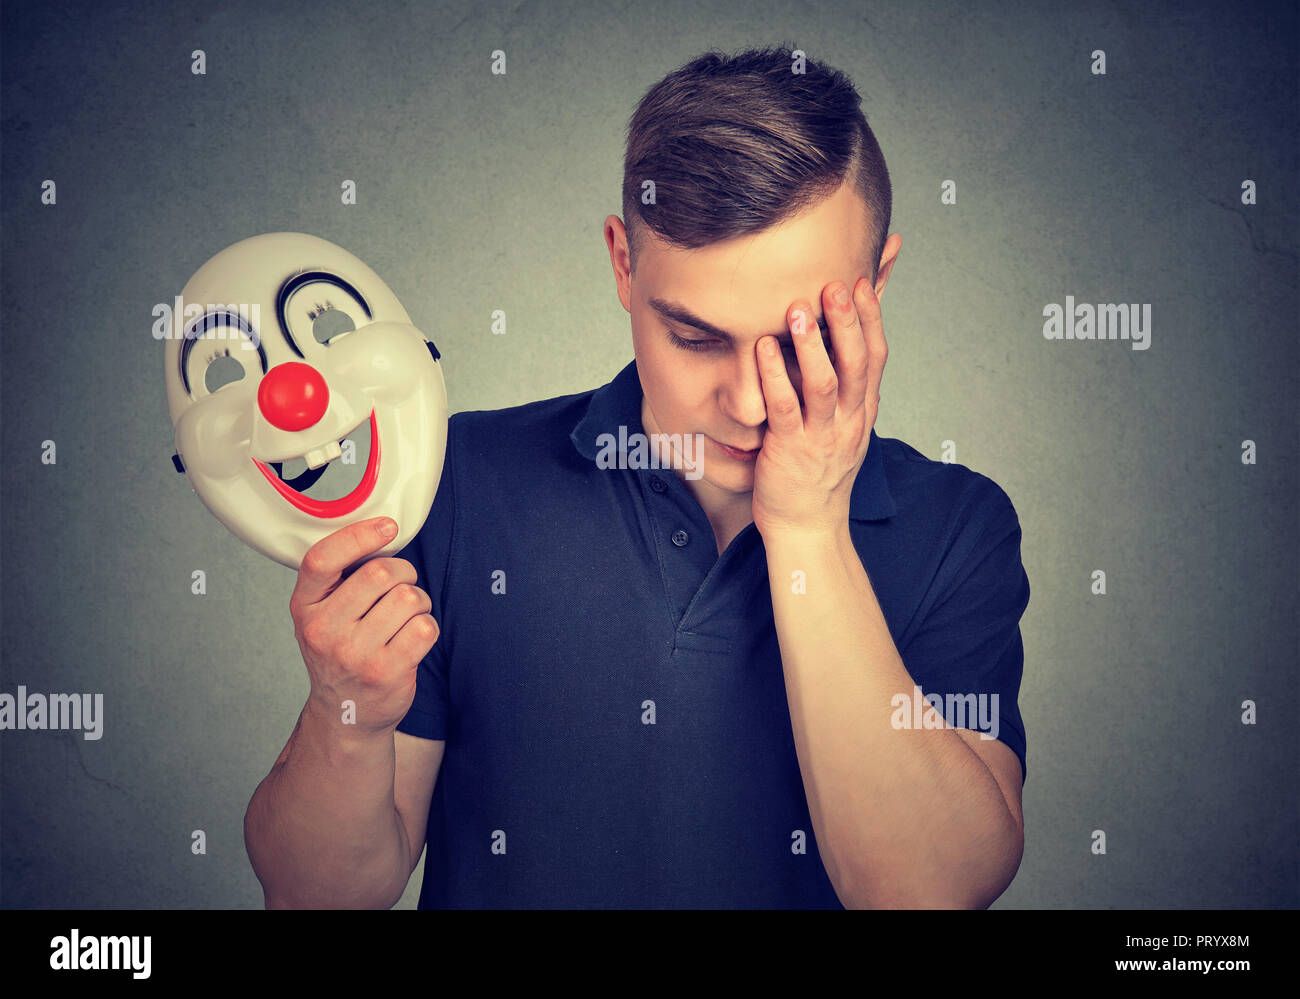 Young man holding colorful clown mask and looking upset being in depression and hiding feelings - Stock Image